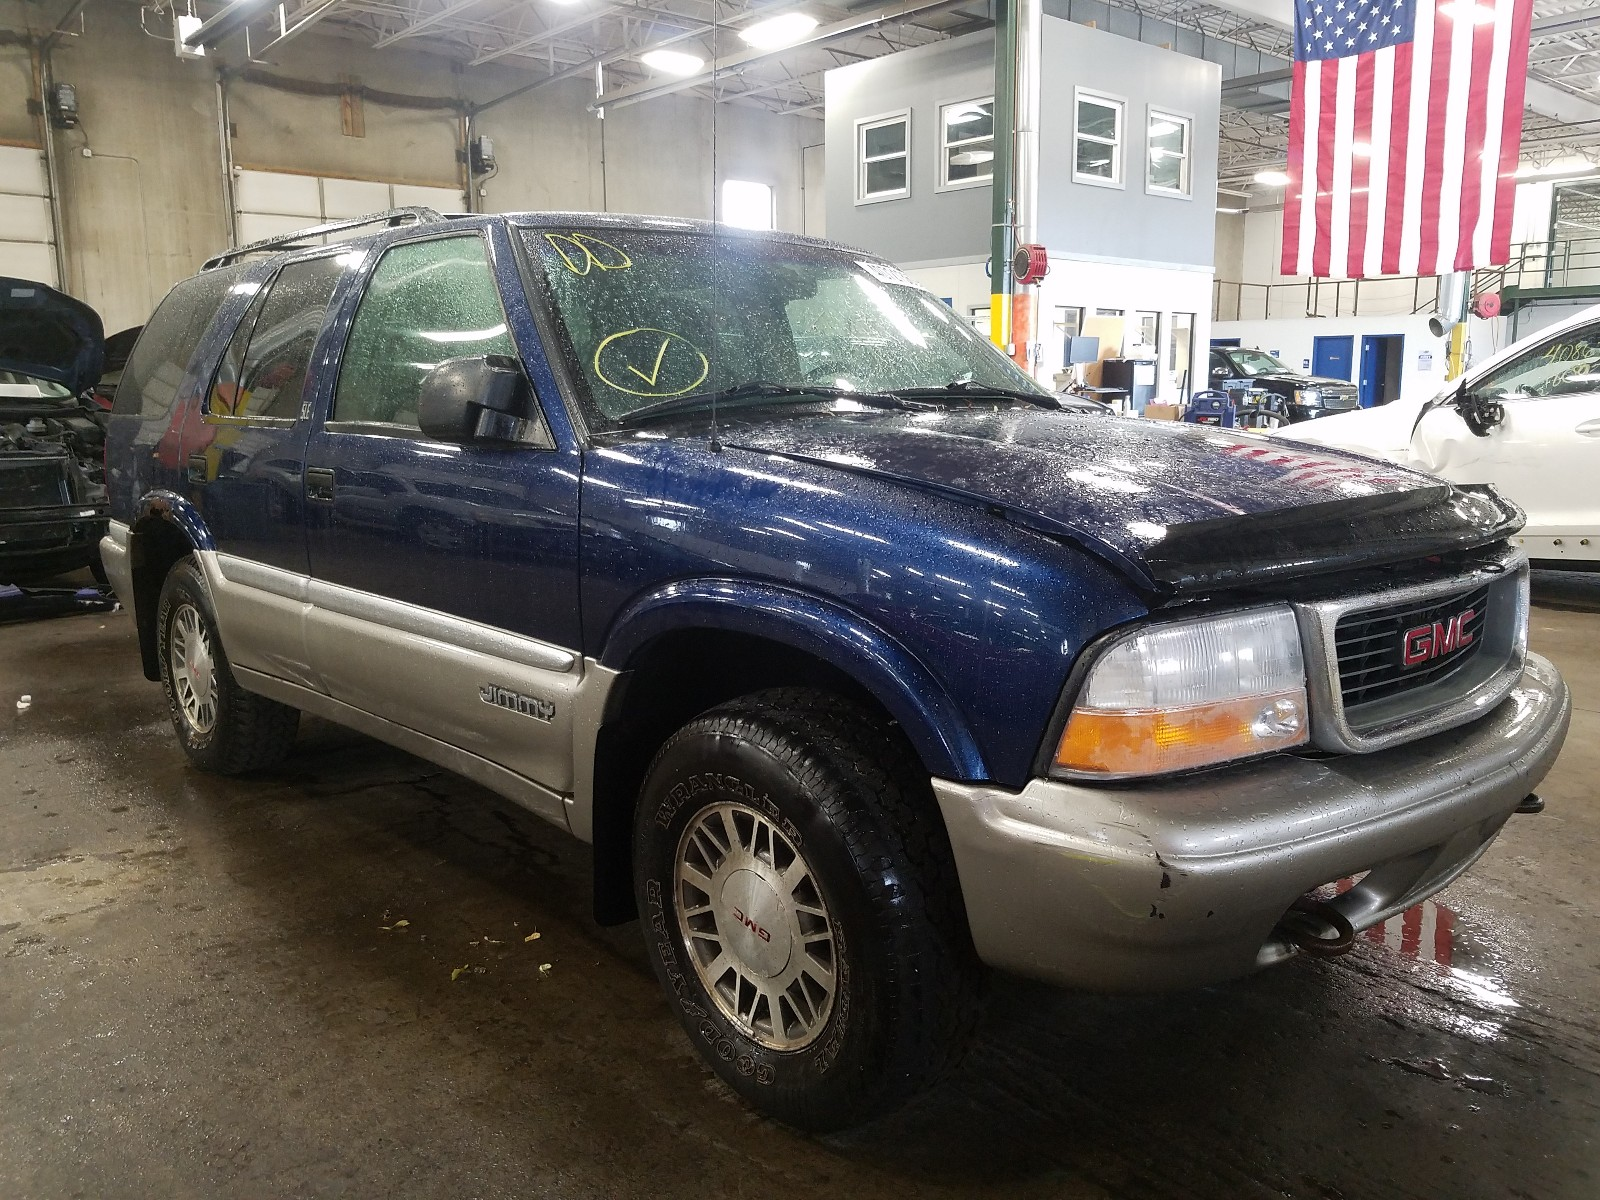 1999 gmc jimmy for sale at copart blaine mn lot 40721360 salvagereseller com 1999 gmc jimmy for sale at copart